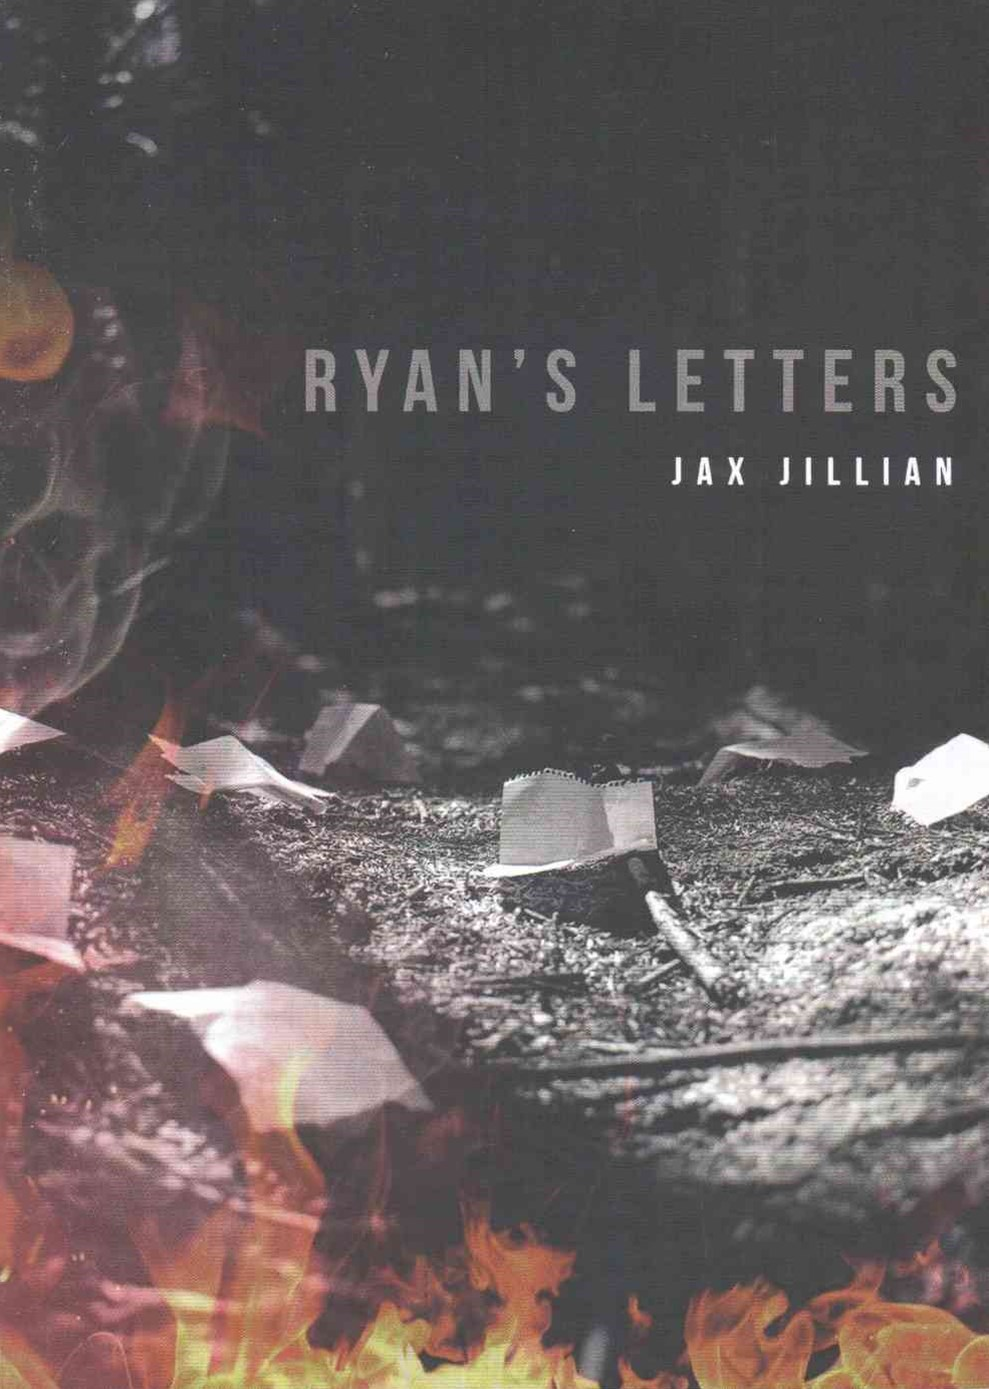 Ryan 's Letters